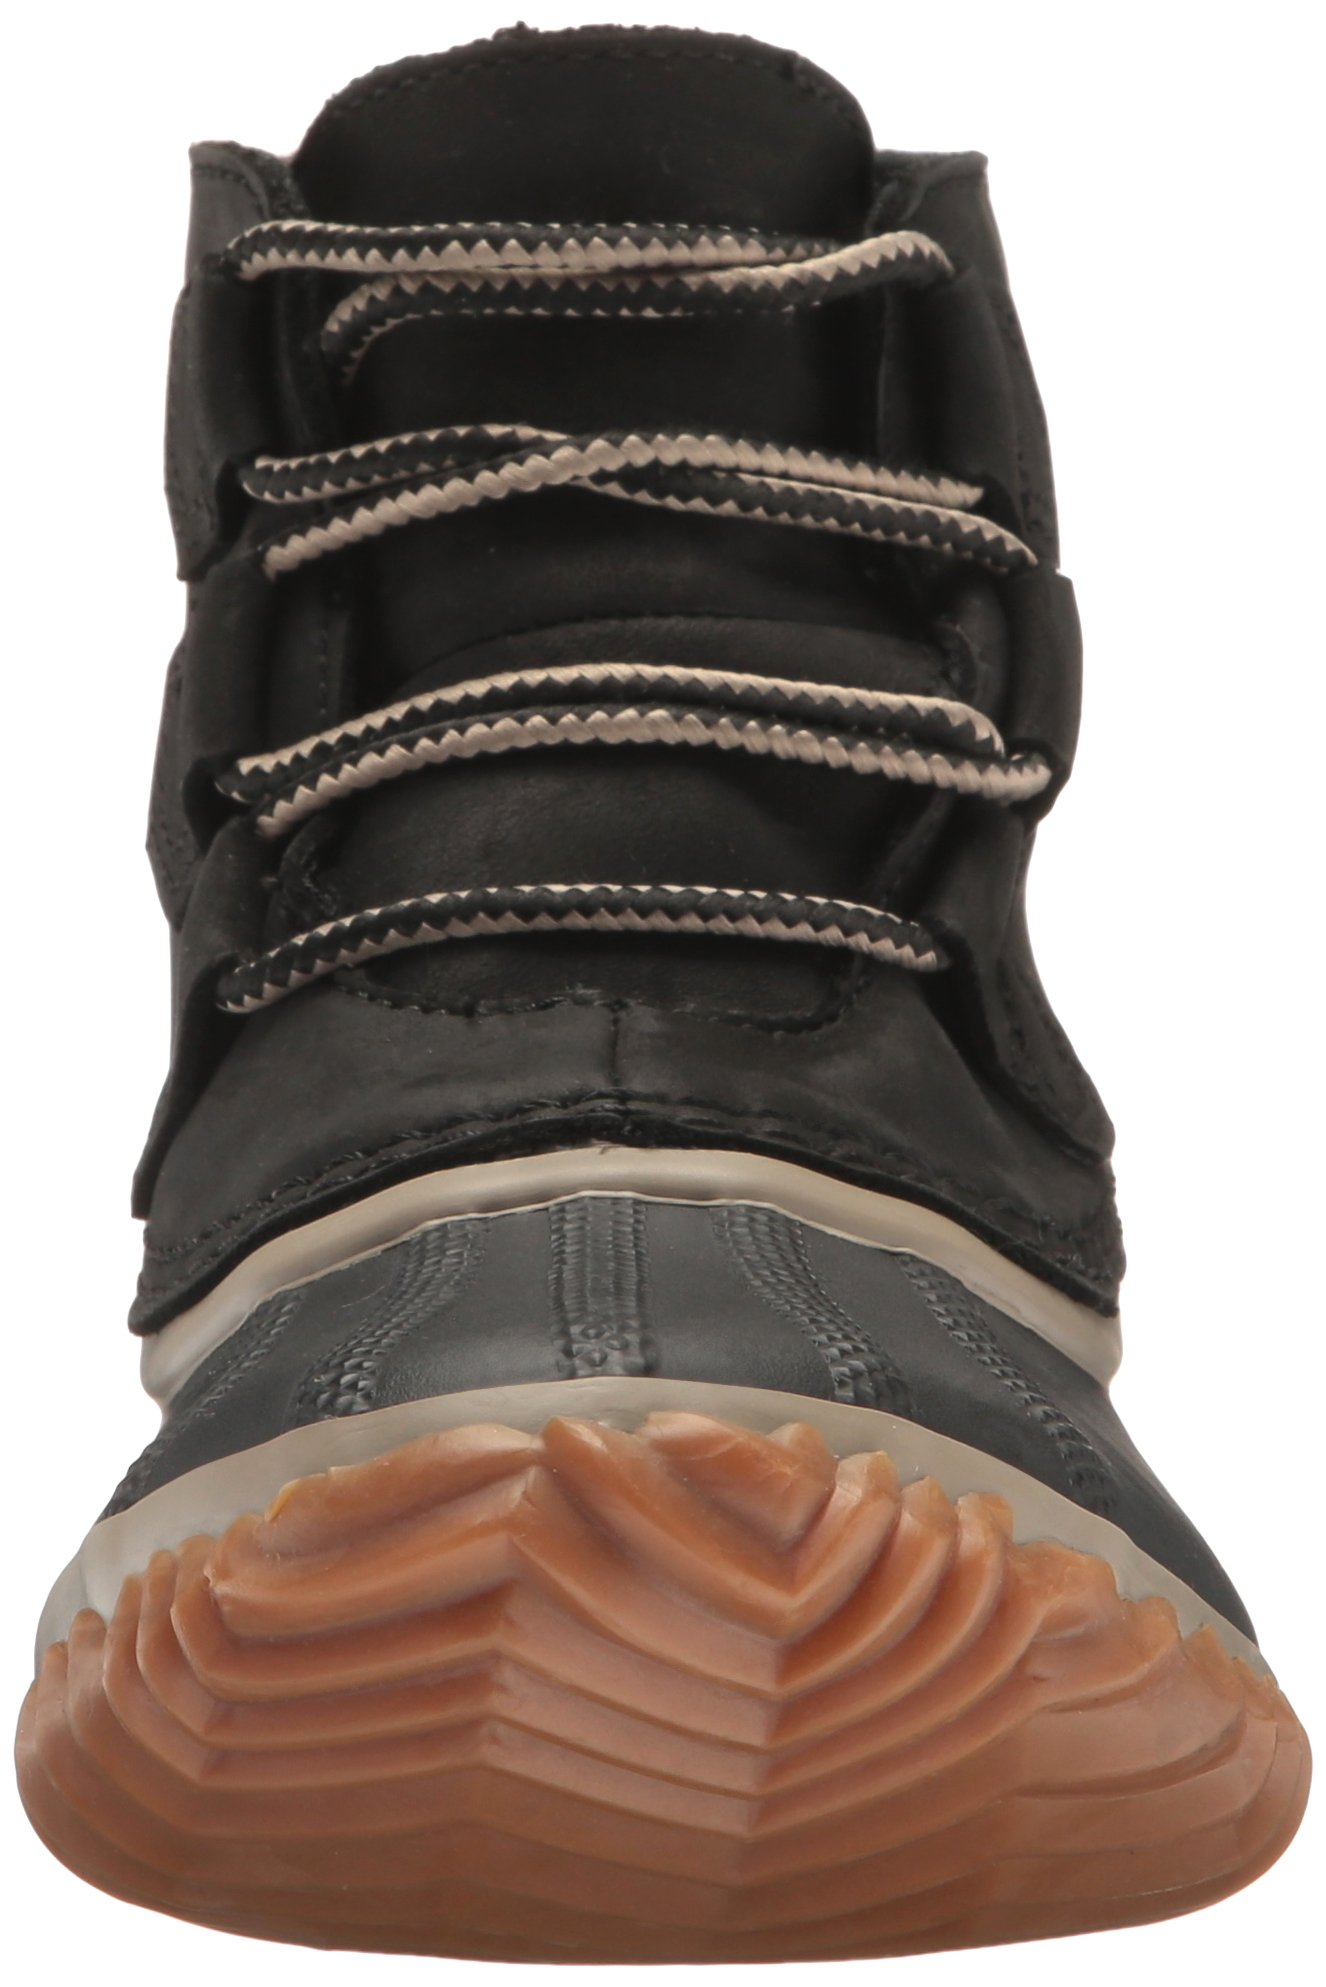 SOREL Women's Out N About Leather Rain Snow Boot, Black, 7.5 M US by SOREL (Image #4)